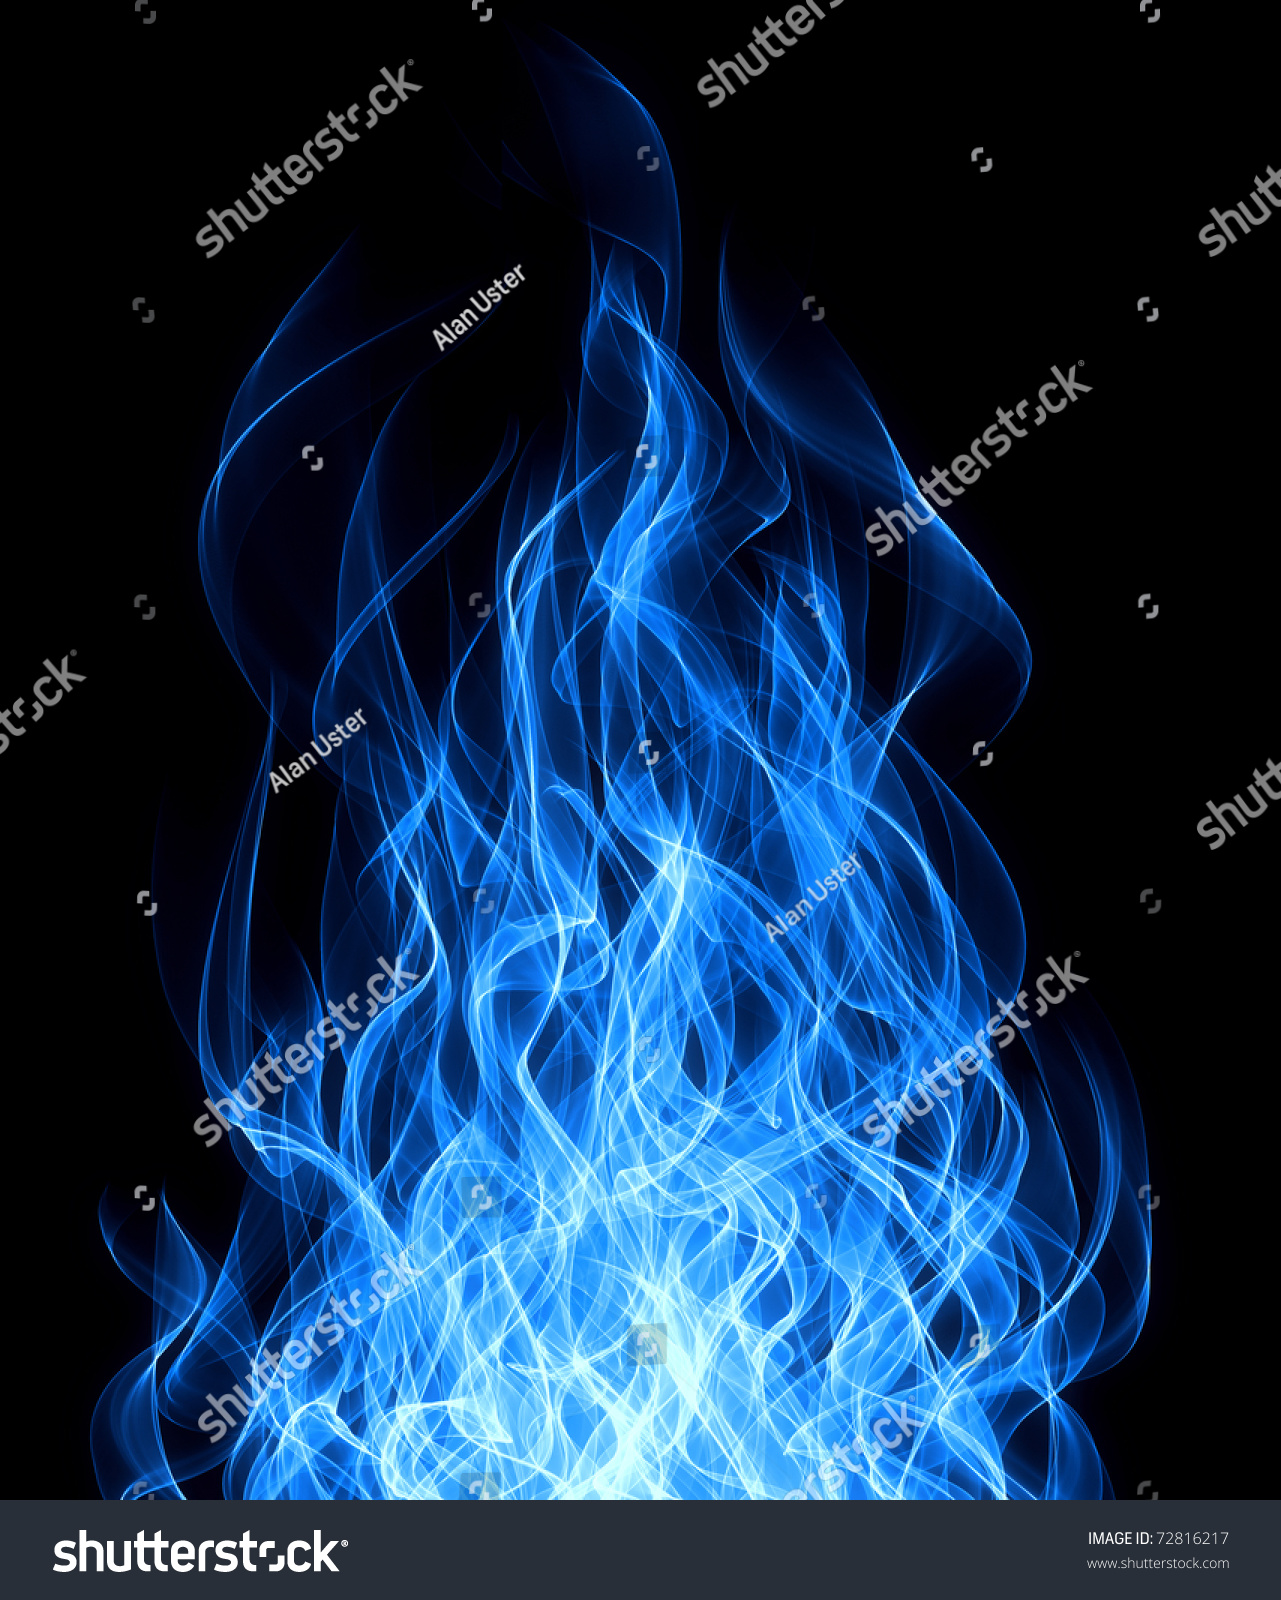 gas fire flame background stock illustration 72816217 shutterstock